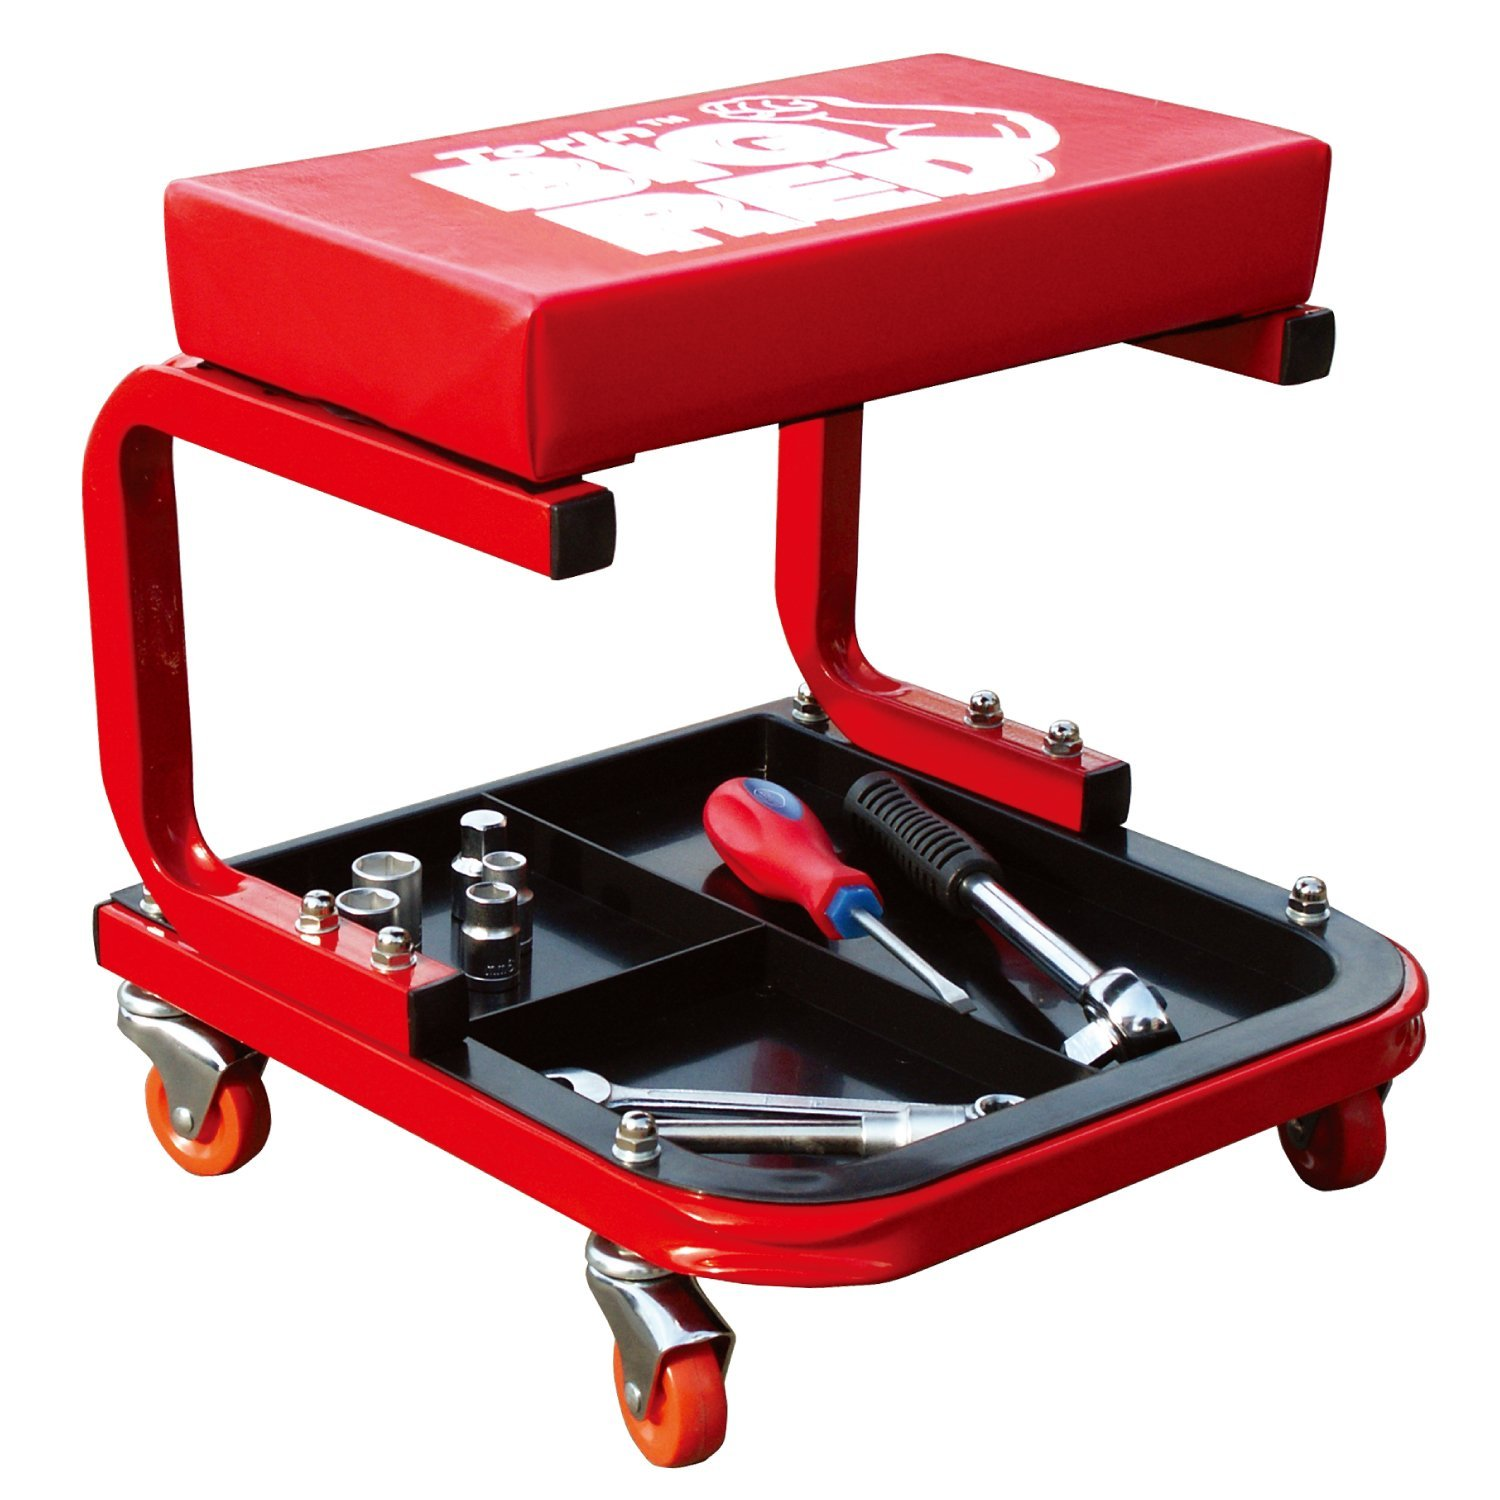 garage chairs rolling booster high tr6300 creeper shop seat padded mechanic stool with tool tray red by torin ship from us